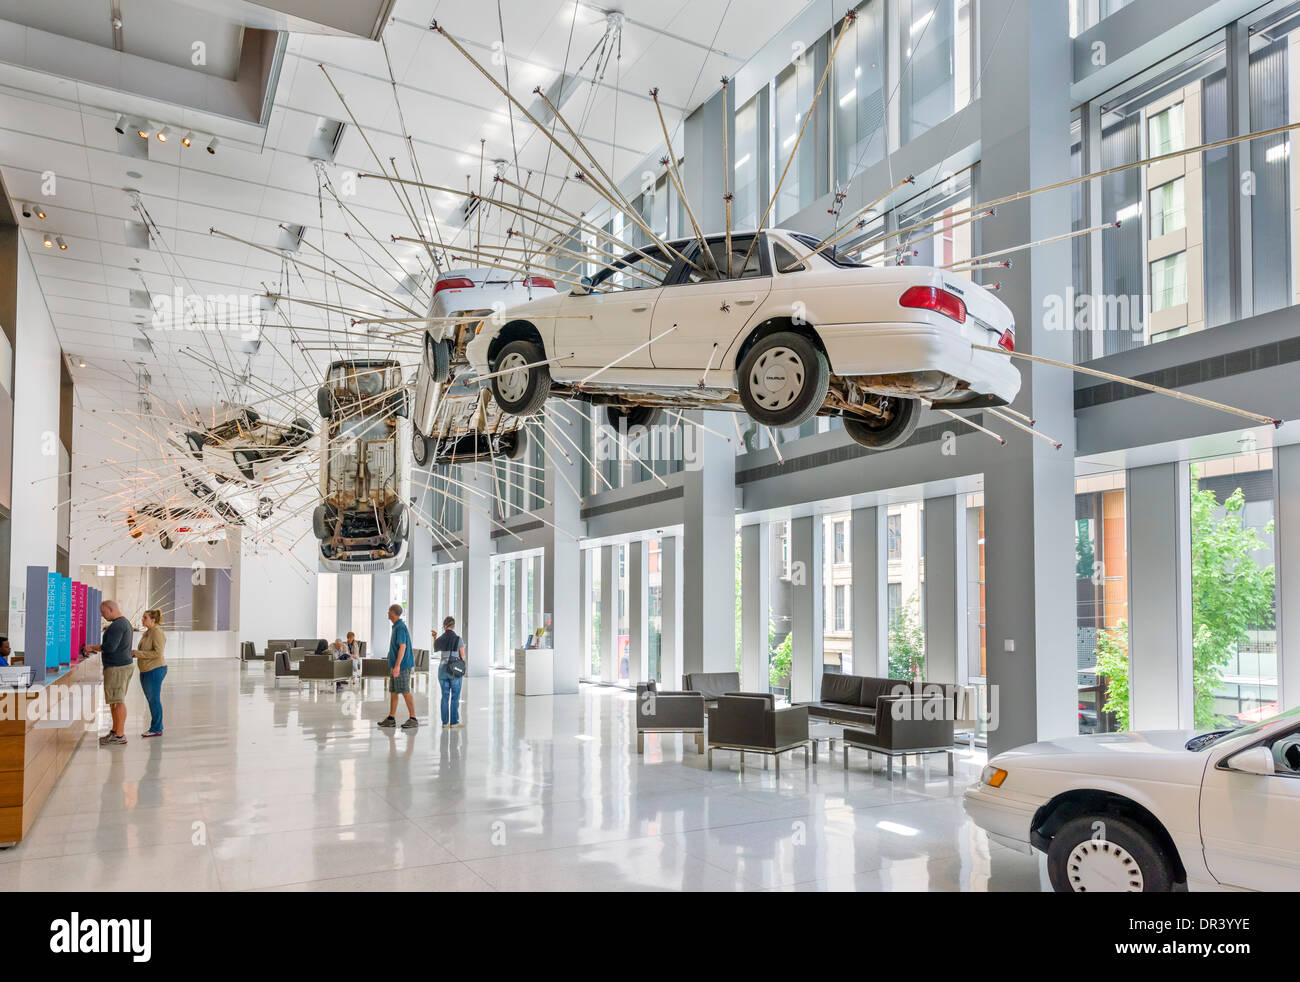 Inopportune: Stage One  installation by Cai Guo-Qiang in the entrance hall to Seattle Art Museum, Seattle, Washington, - Stock Image